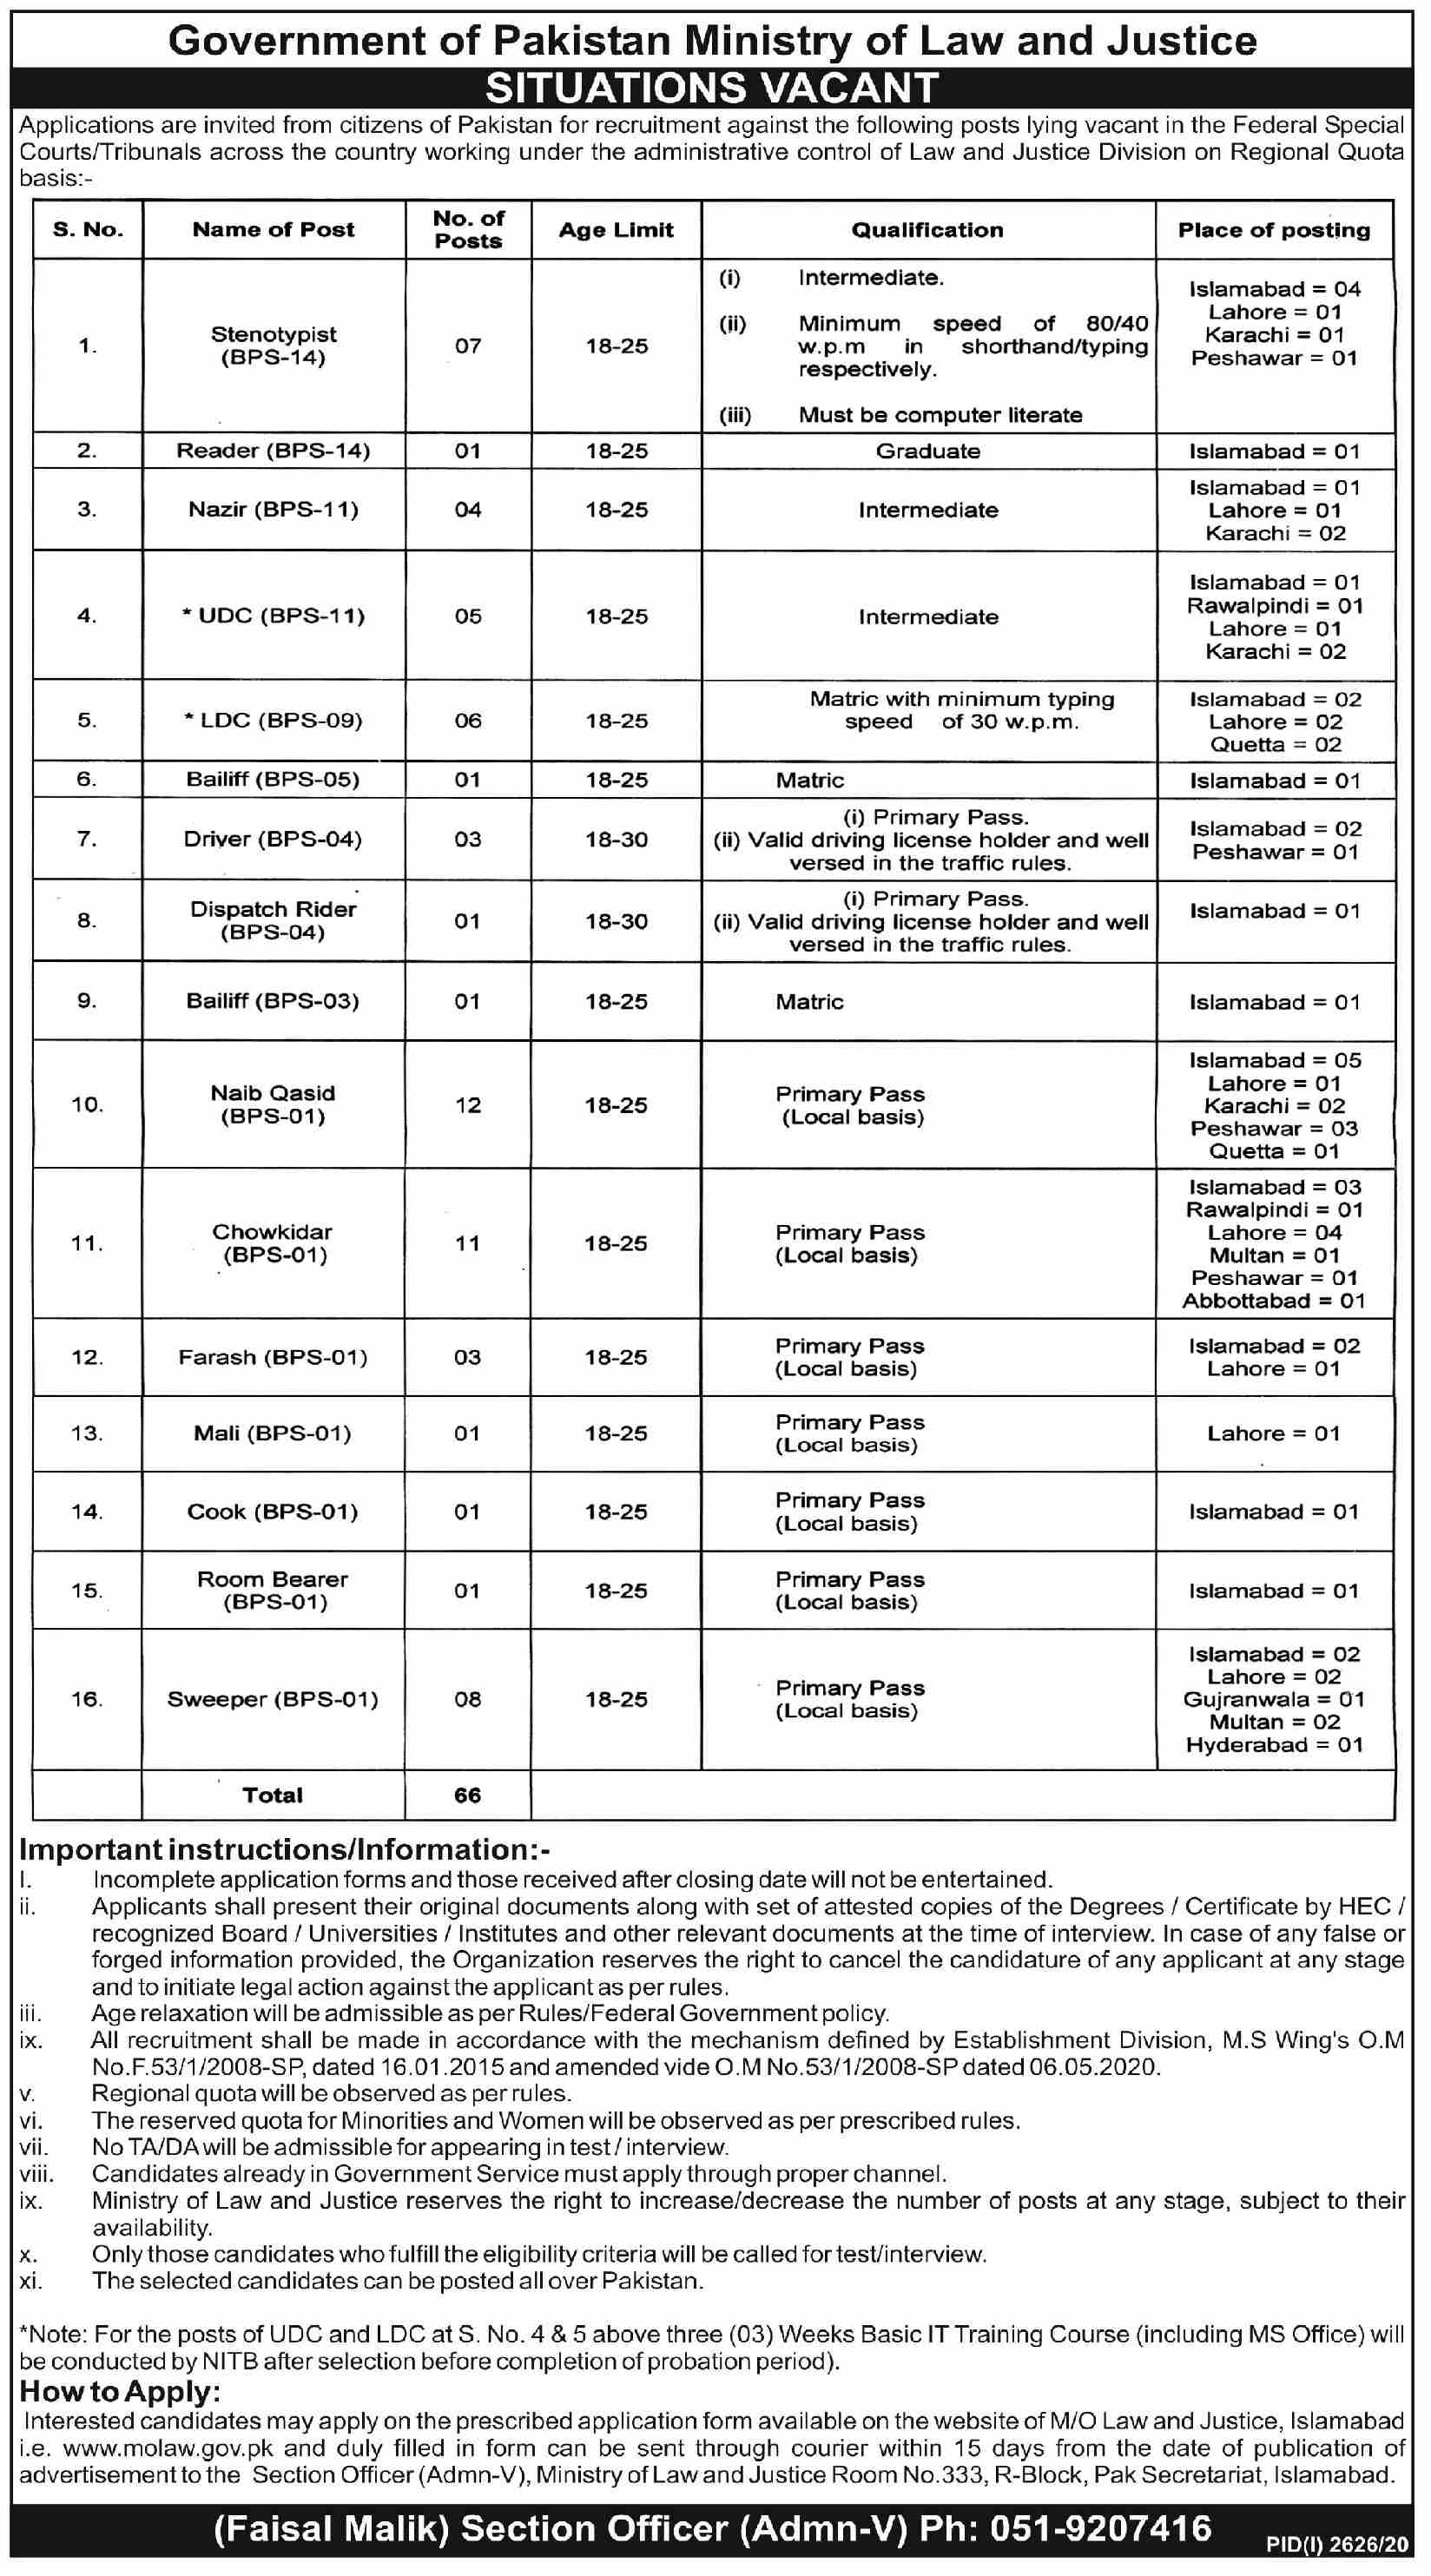 Ministry Of Law & Justice jobs newspaper ad for Nazir in Islamabad